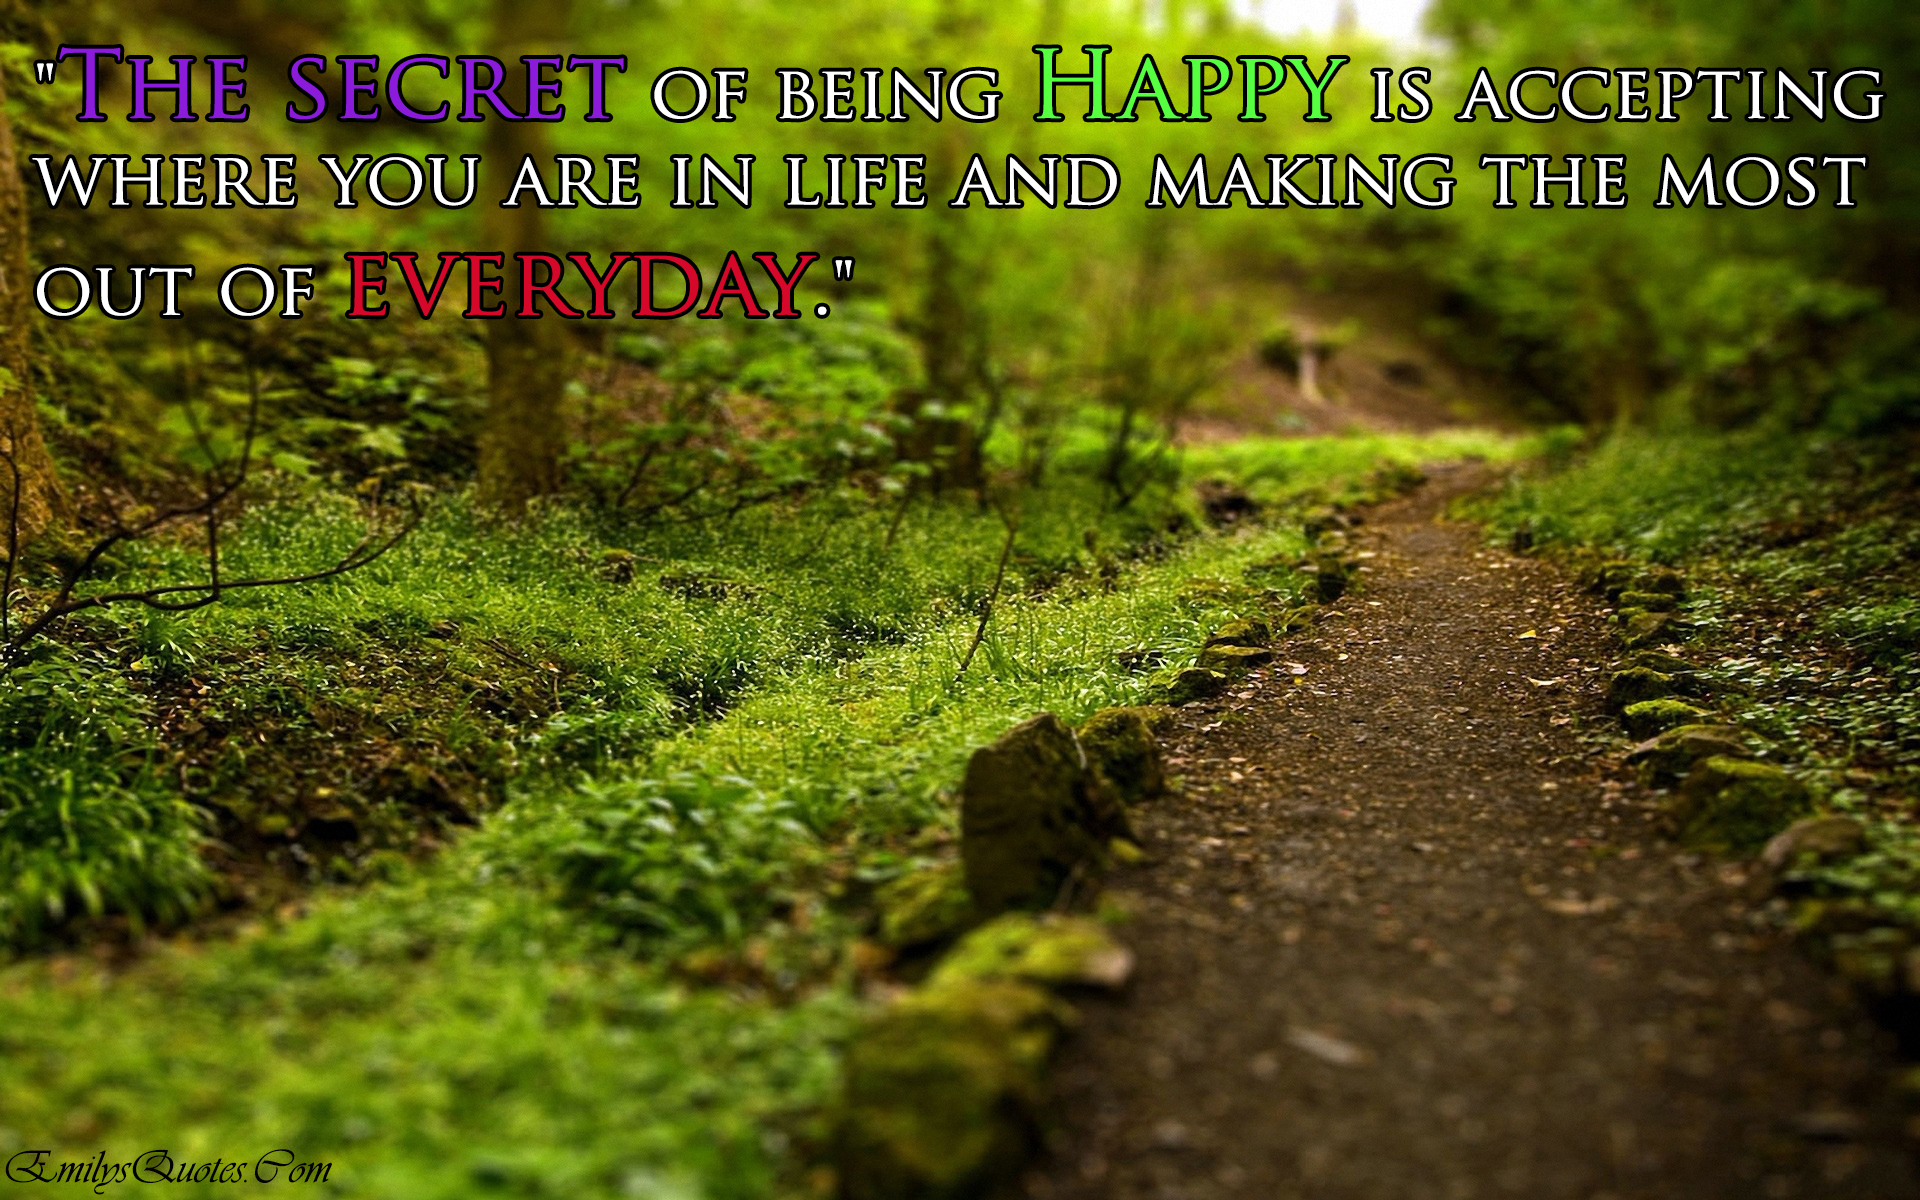 Happy Life Inspirational Quotes The Secret Of Being Happy Is Accepting Where You Are In Life And